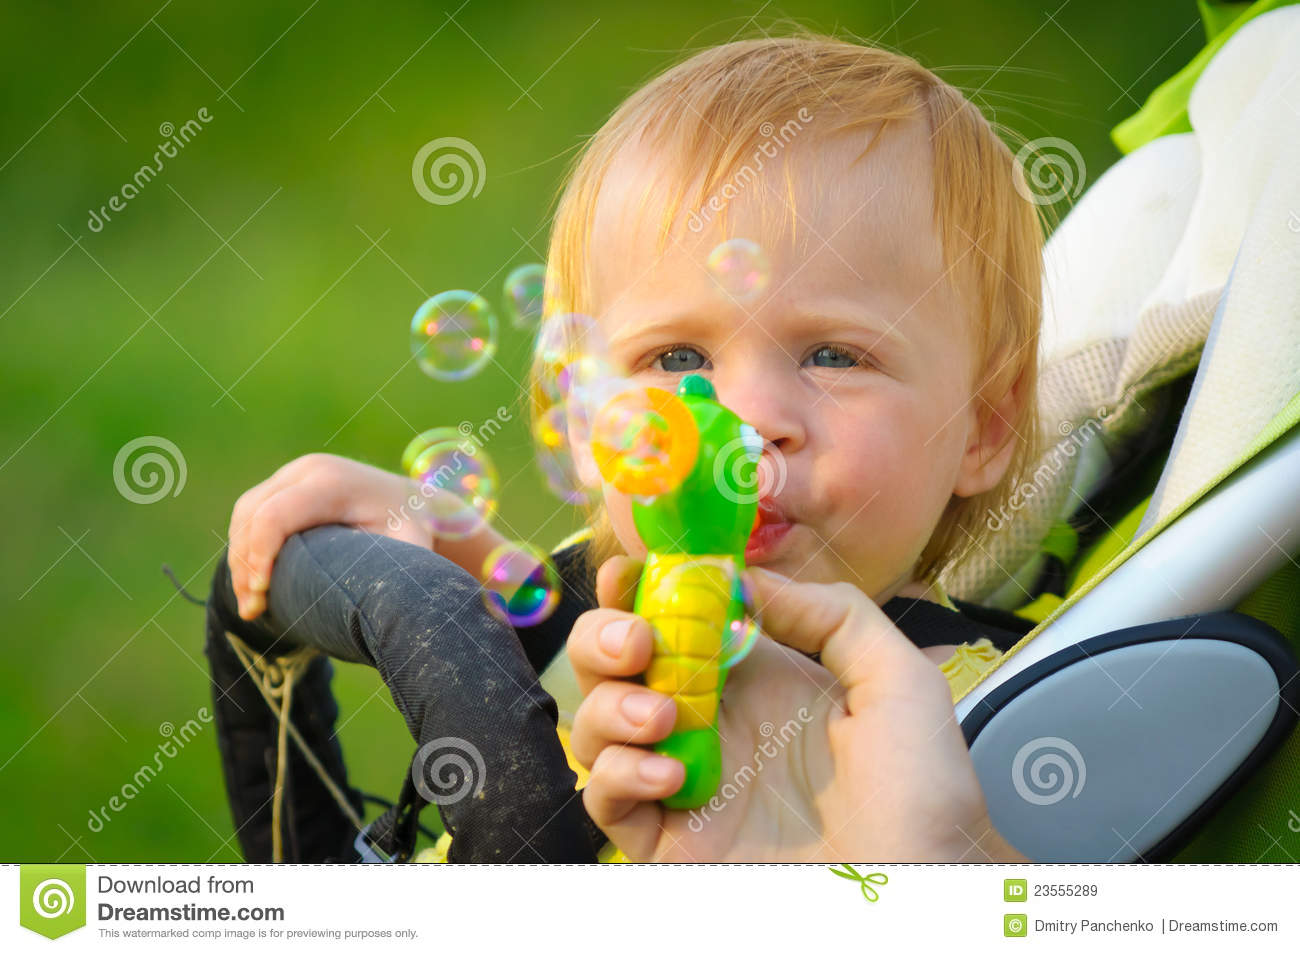 Cute Baby Blowing Bubbles Royalty Free Stock Images - Image: 23555289